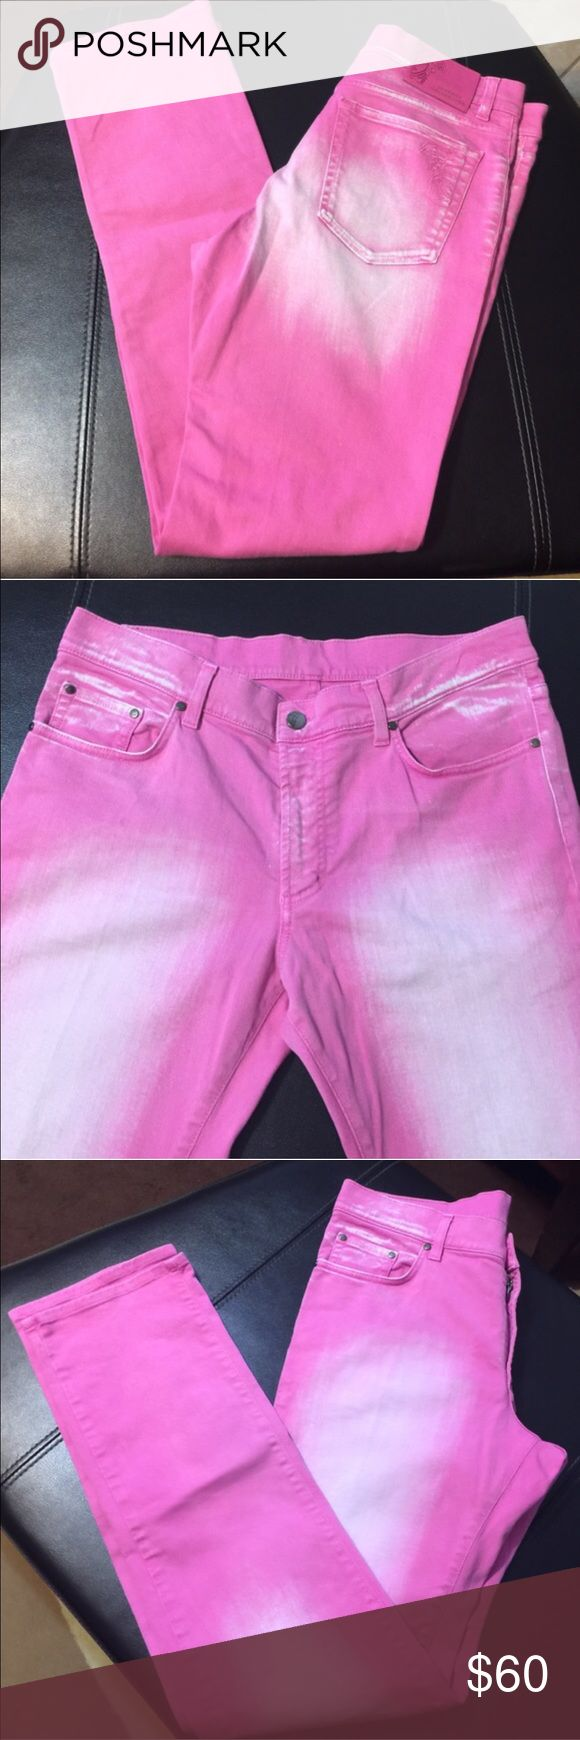 VERSACE JEANS COLLECTION Excellent condition jeans Versace Pants